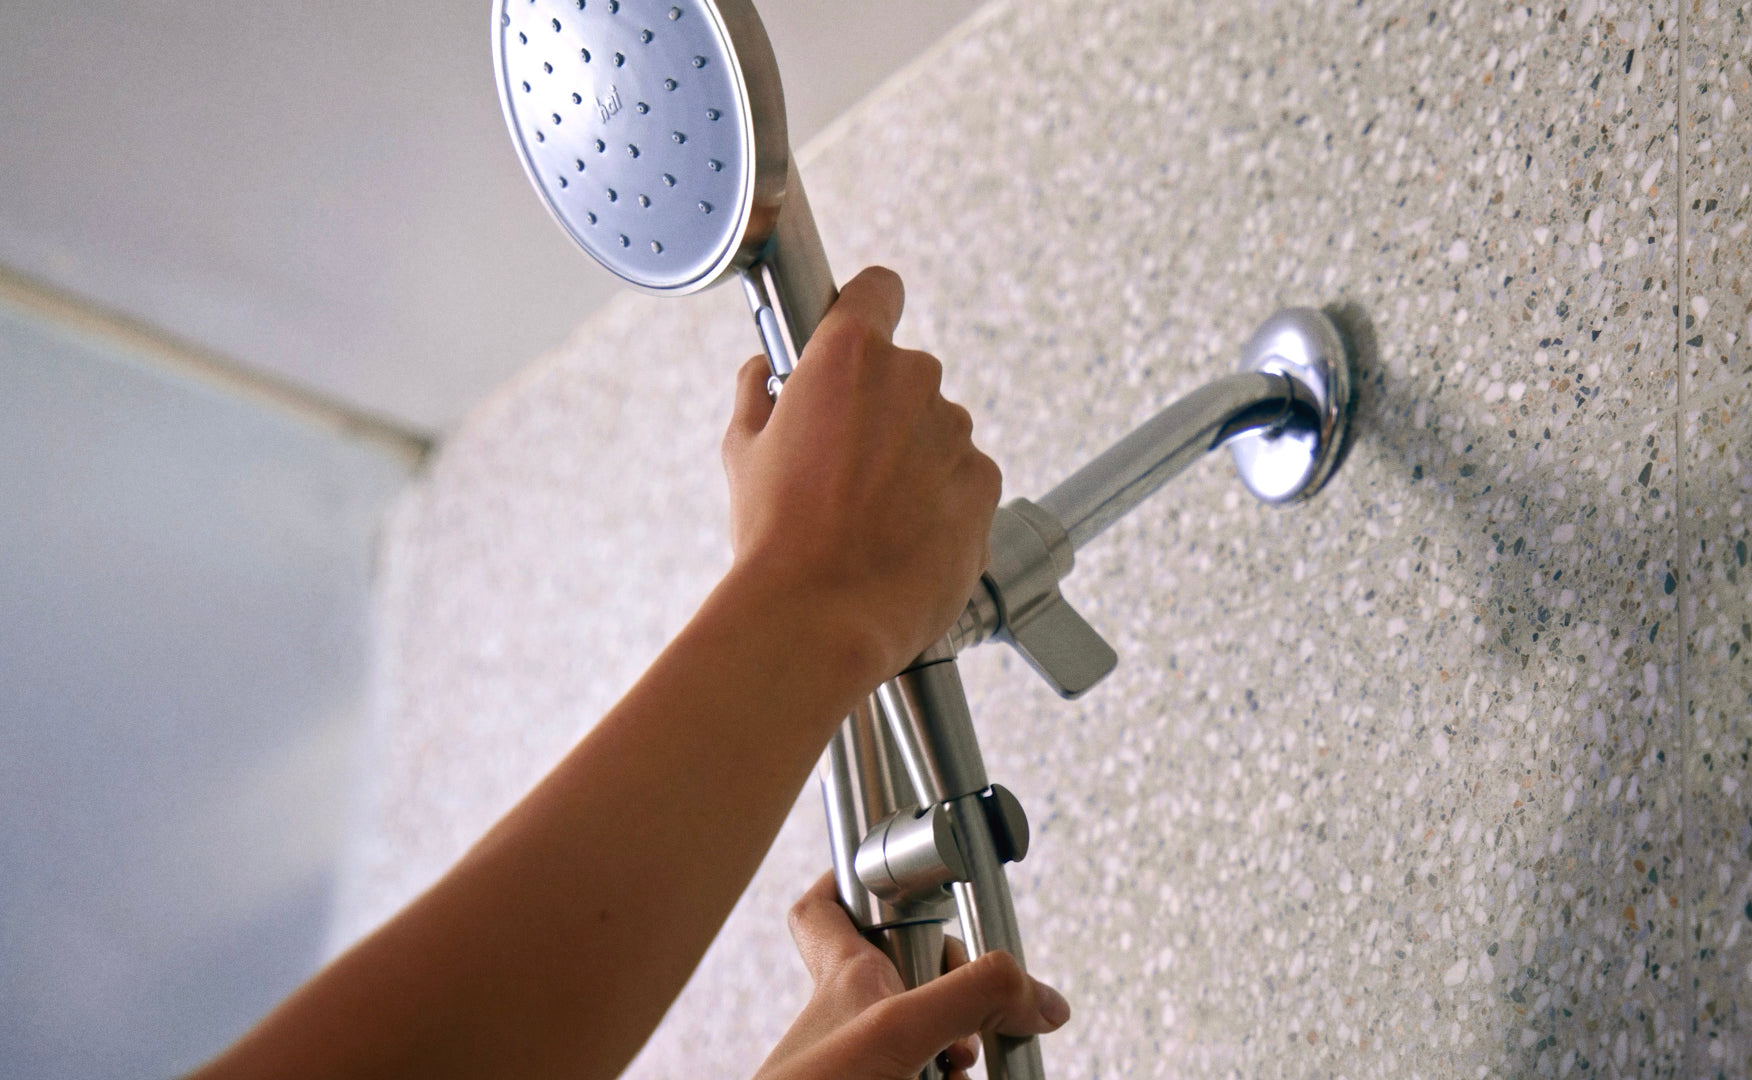 Hand putting hai showerhead handle into it's docking place